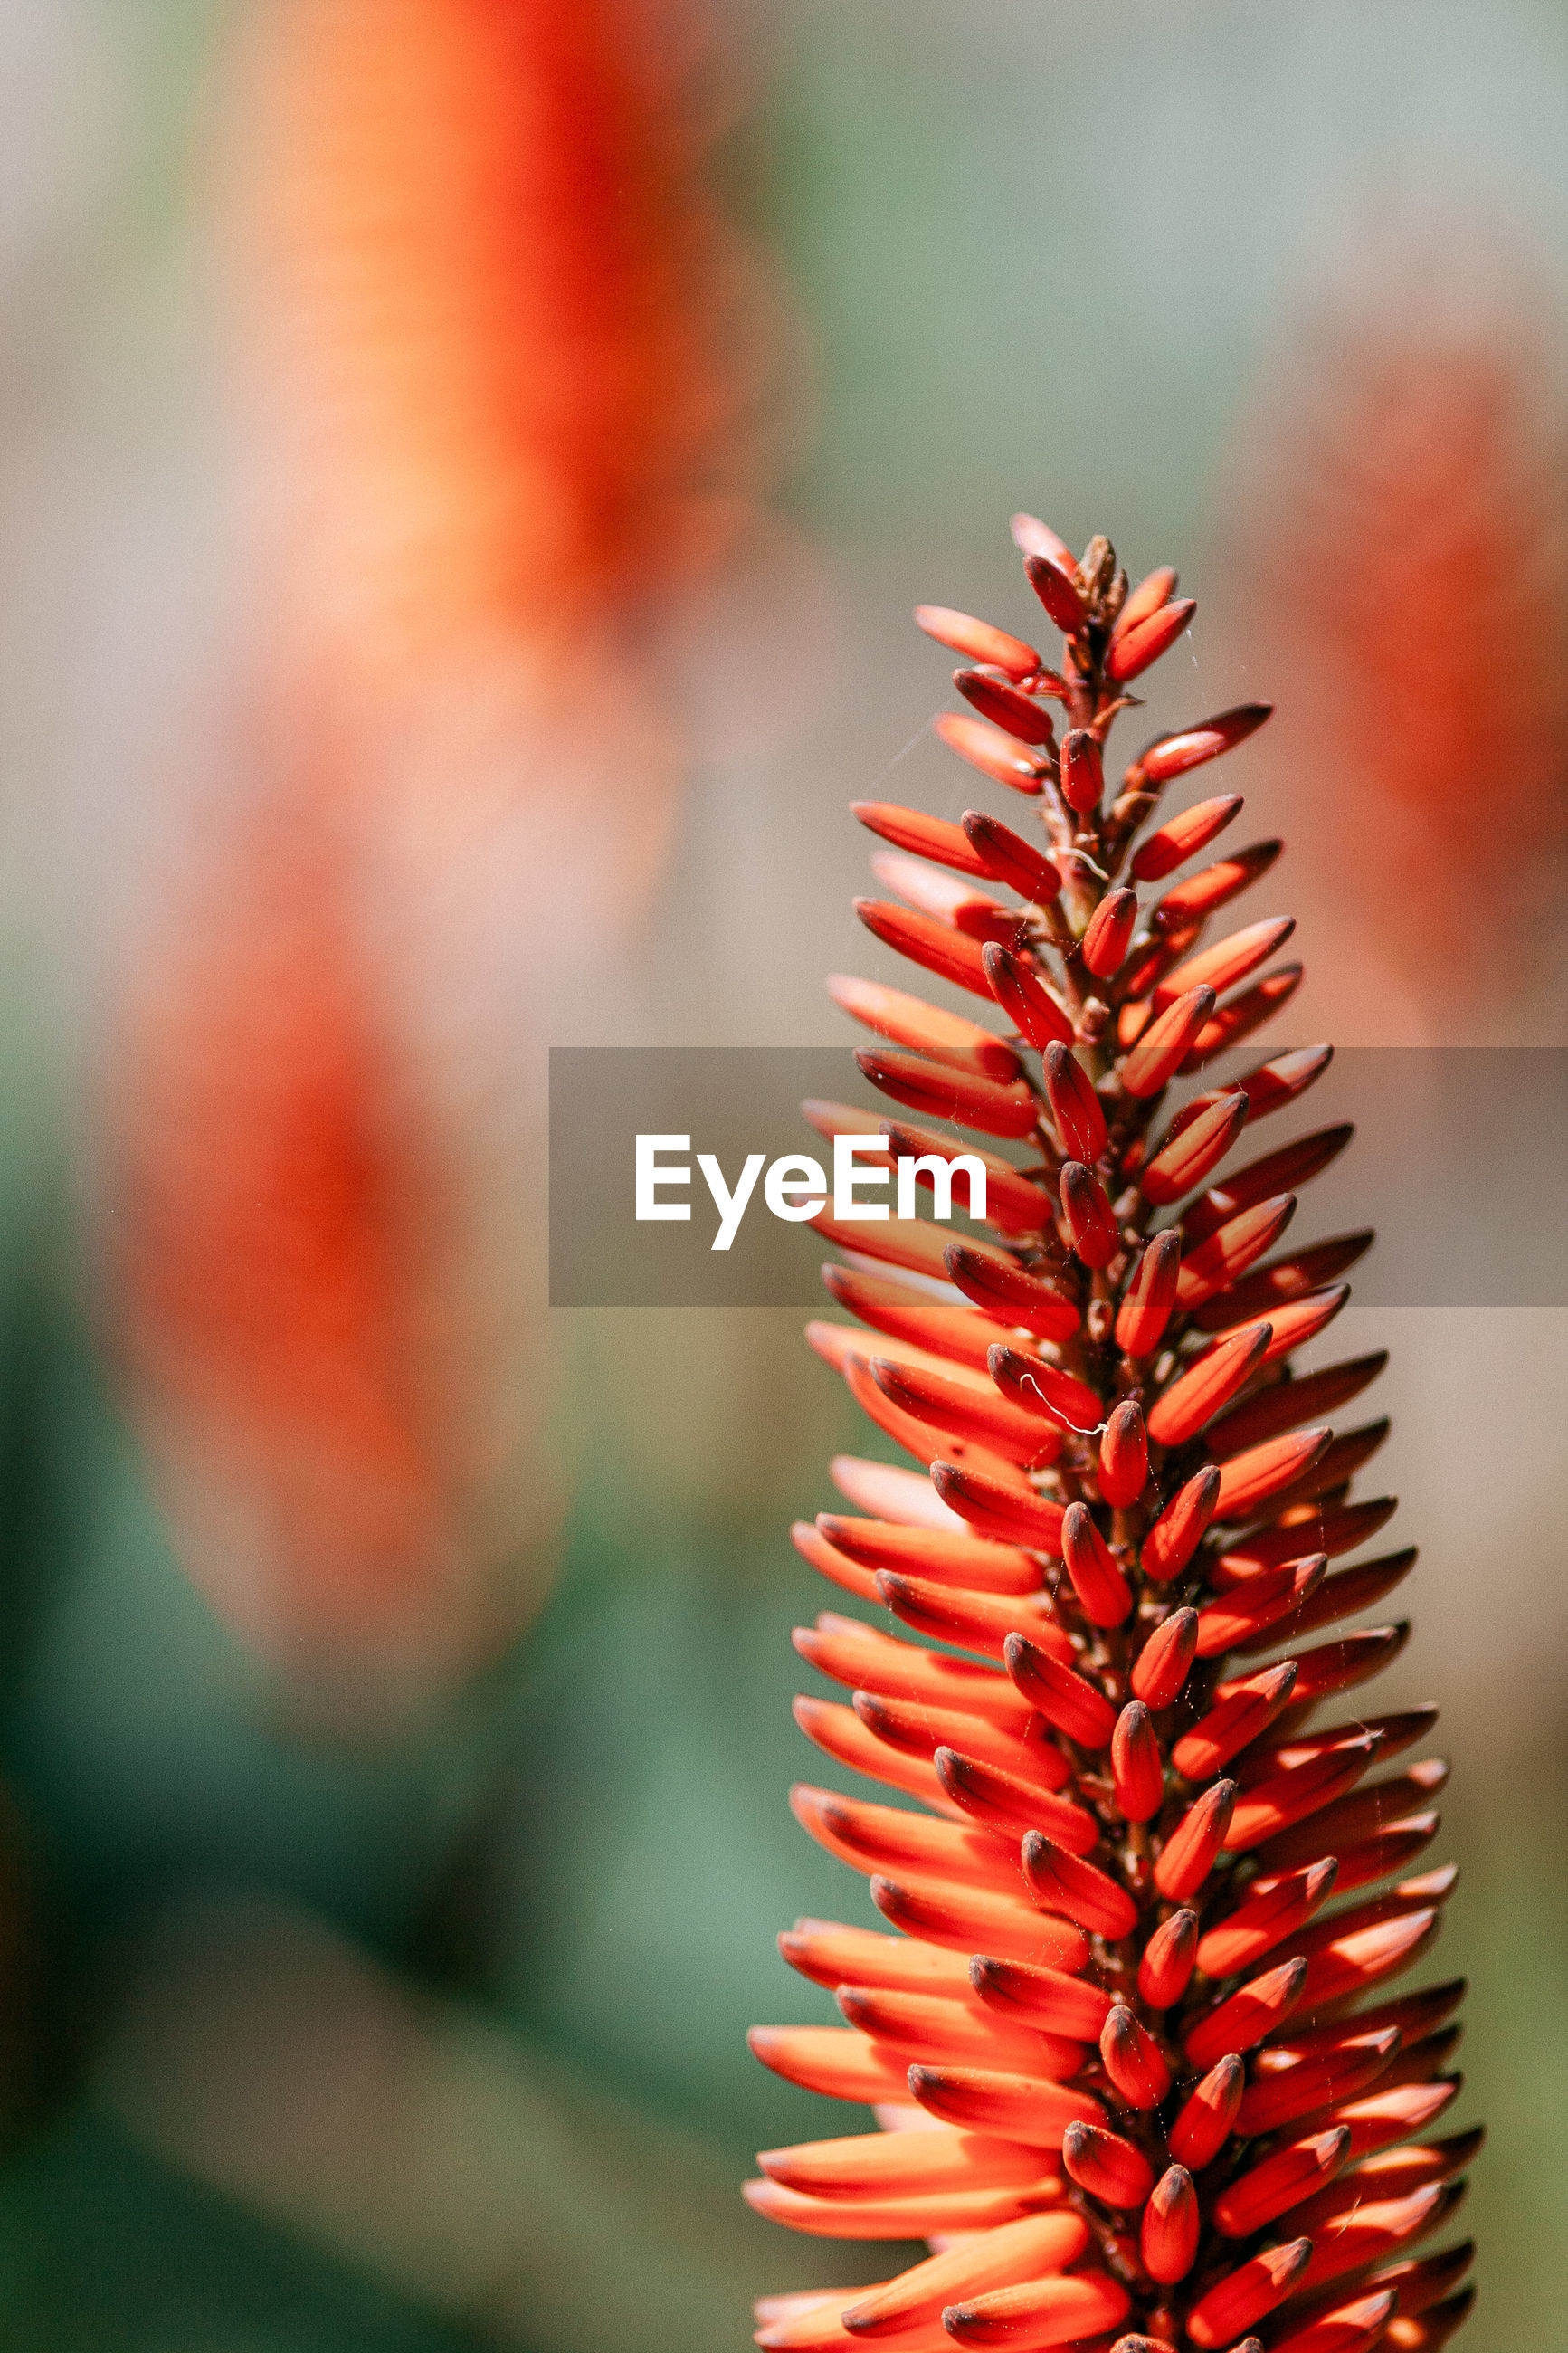 CLOSE-UP OF RED SUCCULENT PLANT IN SUNLIGHT